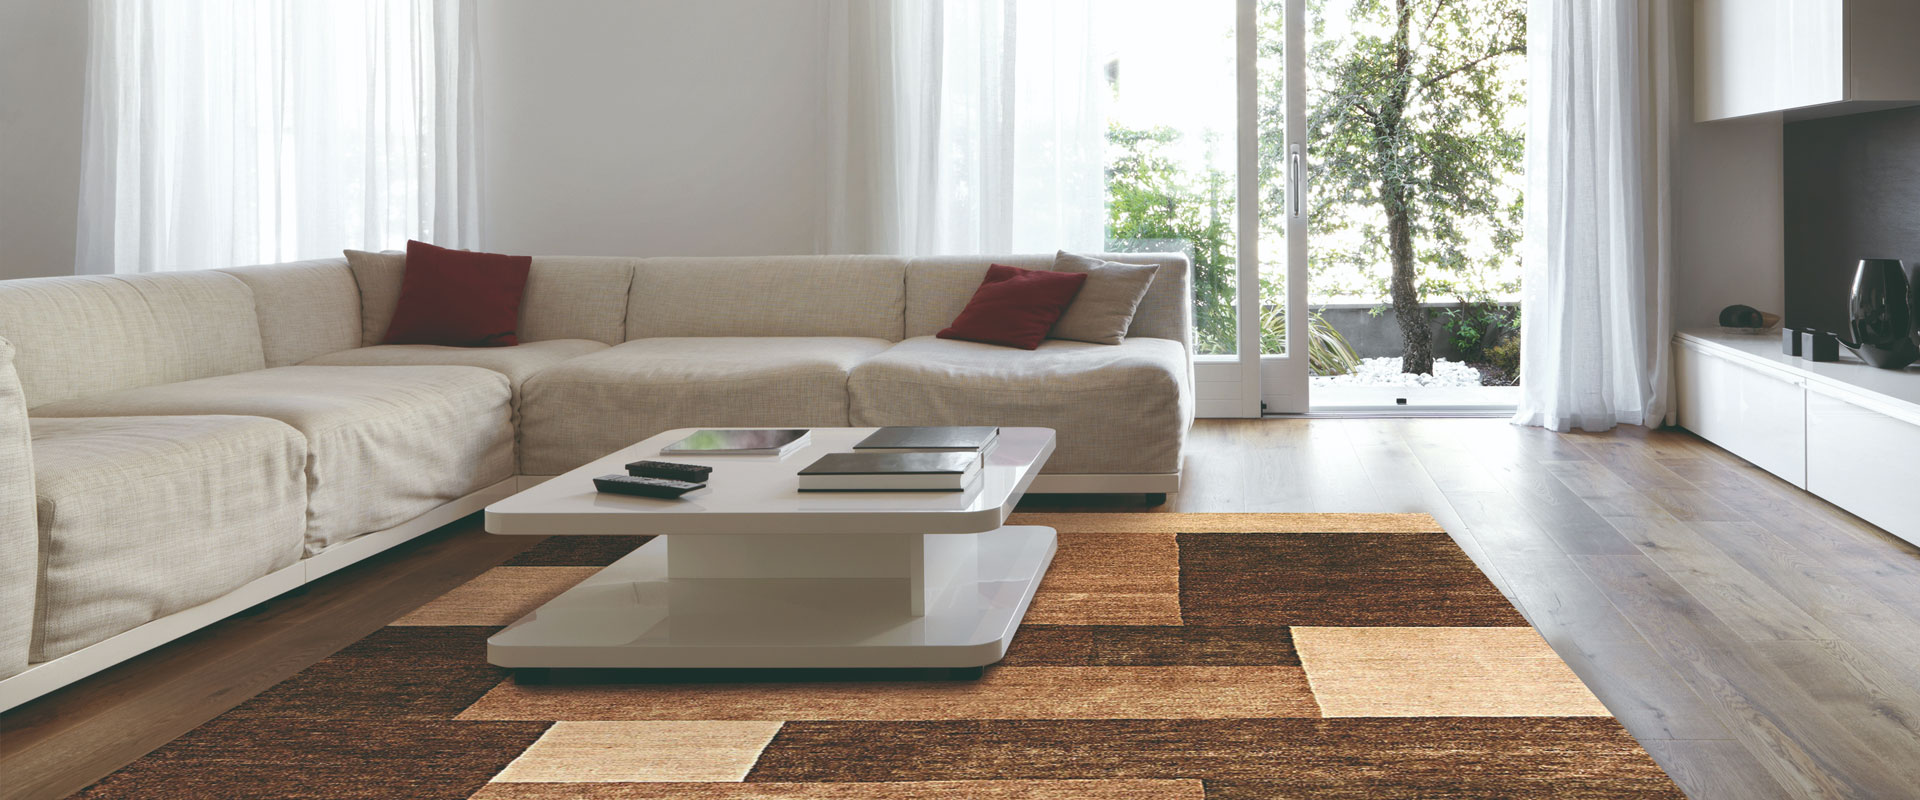 Relish The Fresher Appearance of Your Home